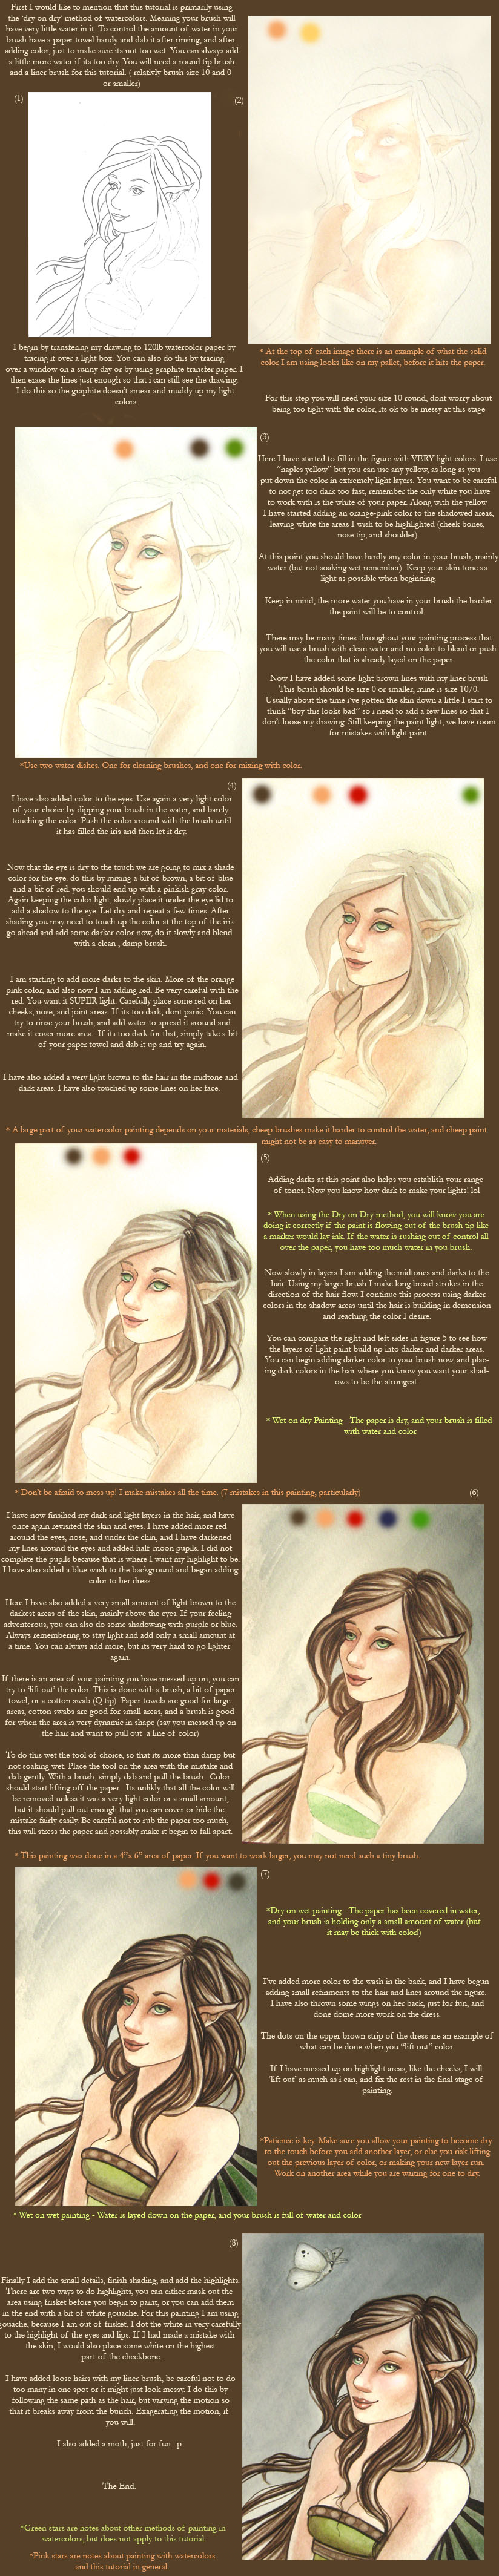 Basic Watercolor Tutorial by LiquidFaeStudios